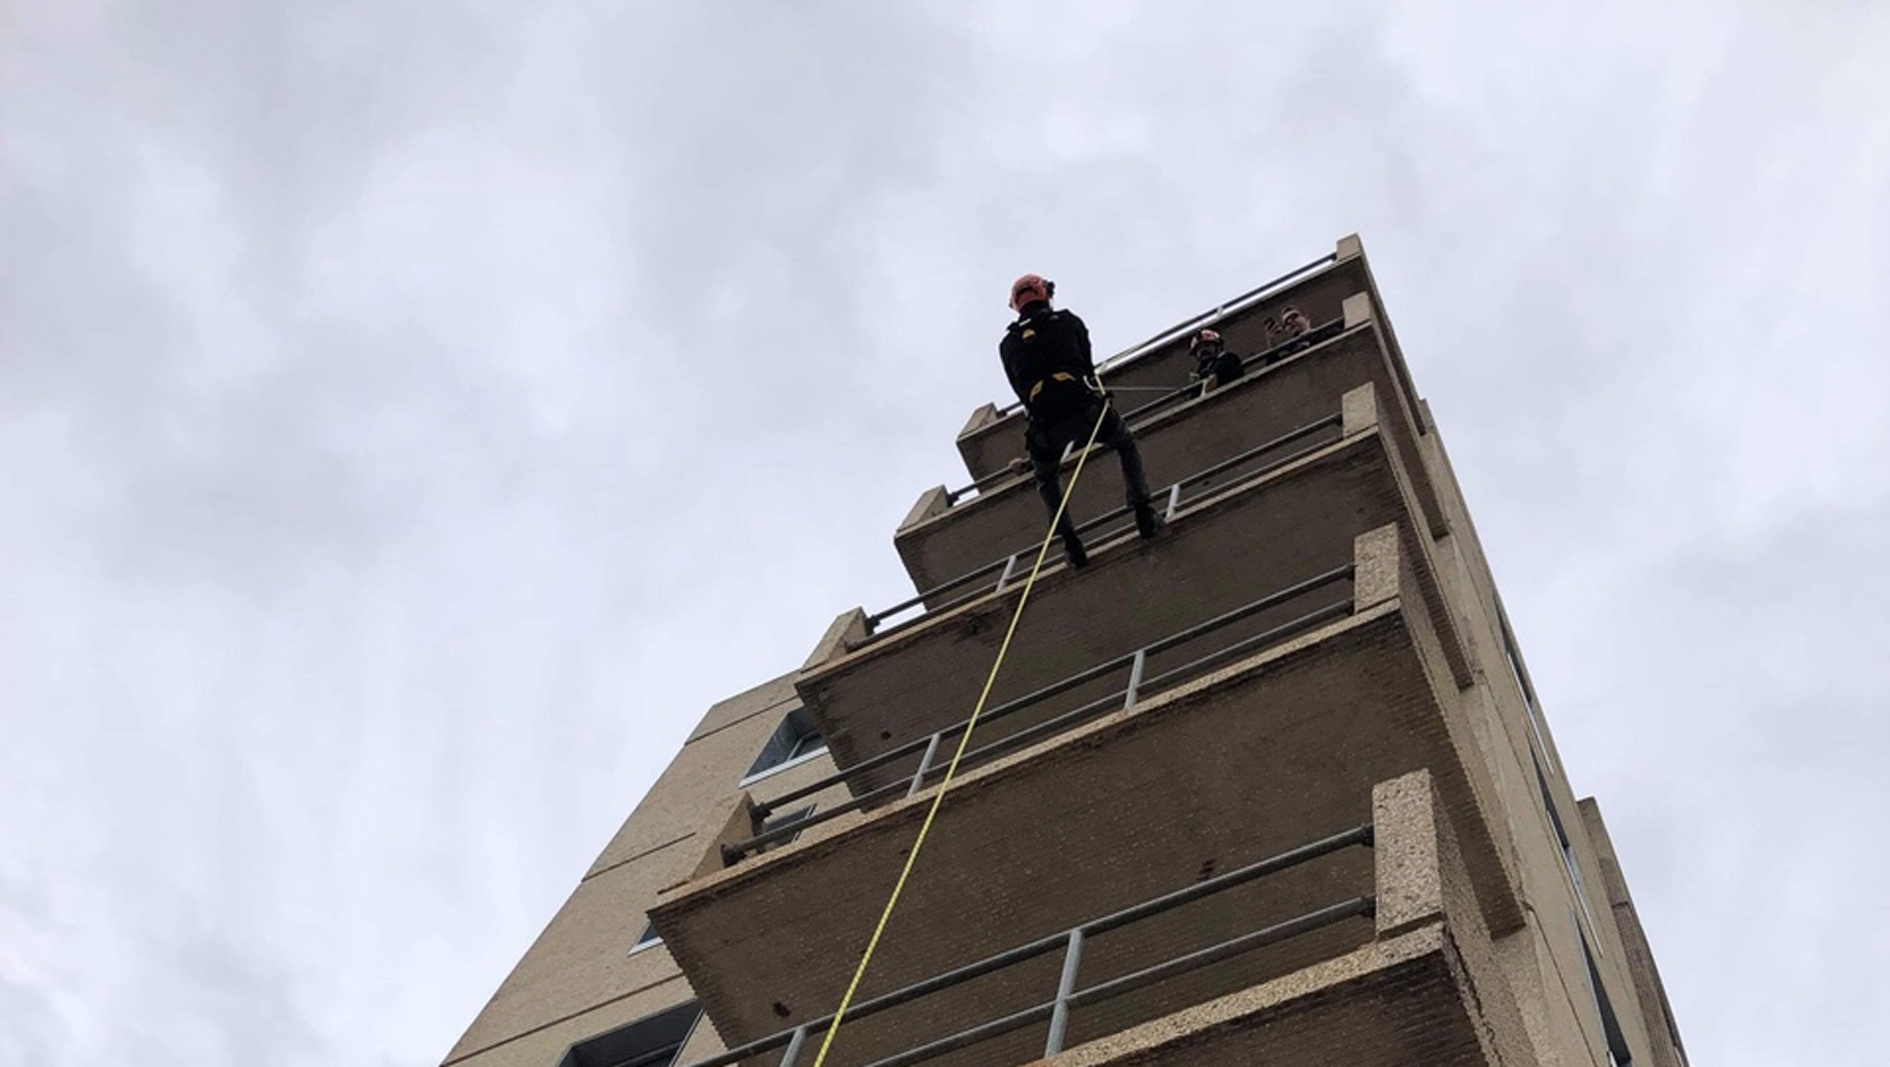 An EMS physician rappelling down the side of a building.